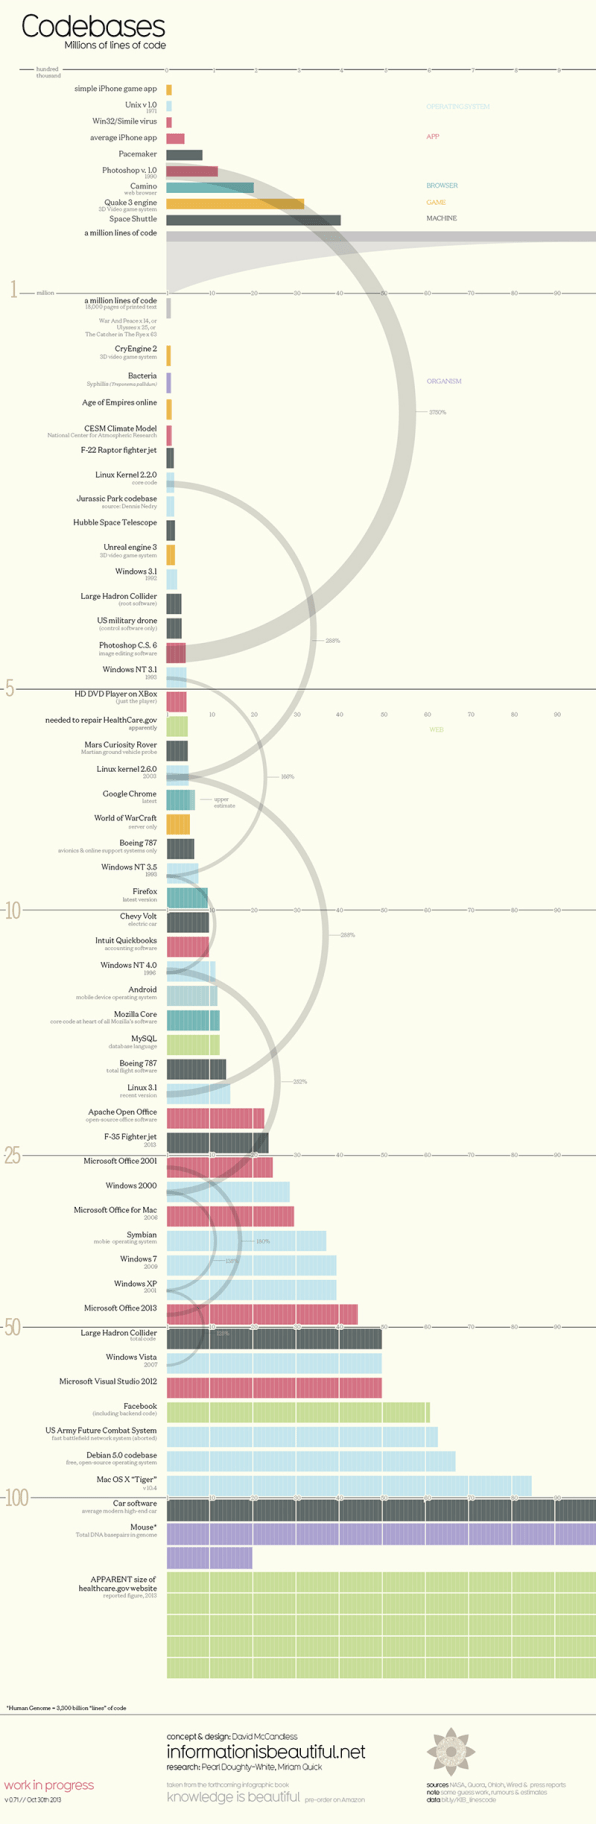 Infographic: How Many Lines Of Code Is Your Favorite App?